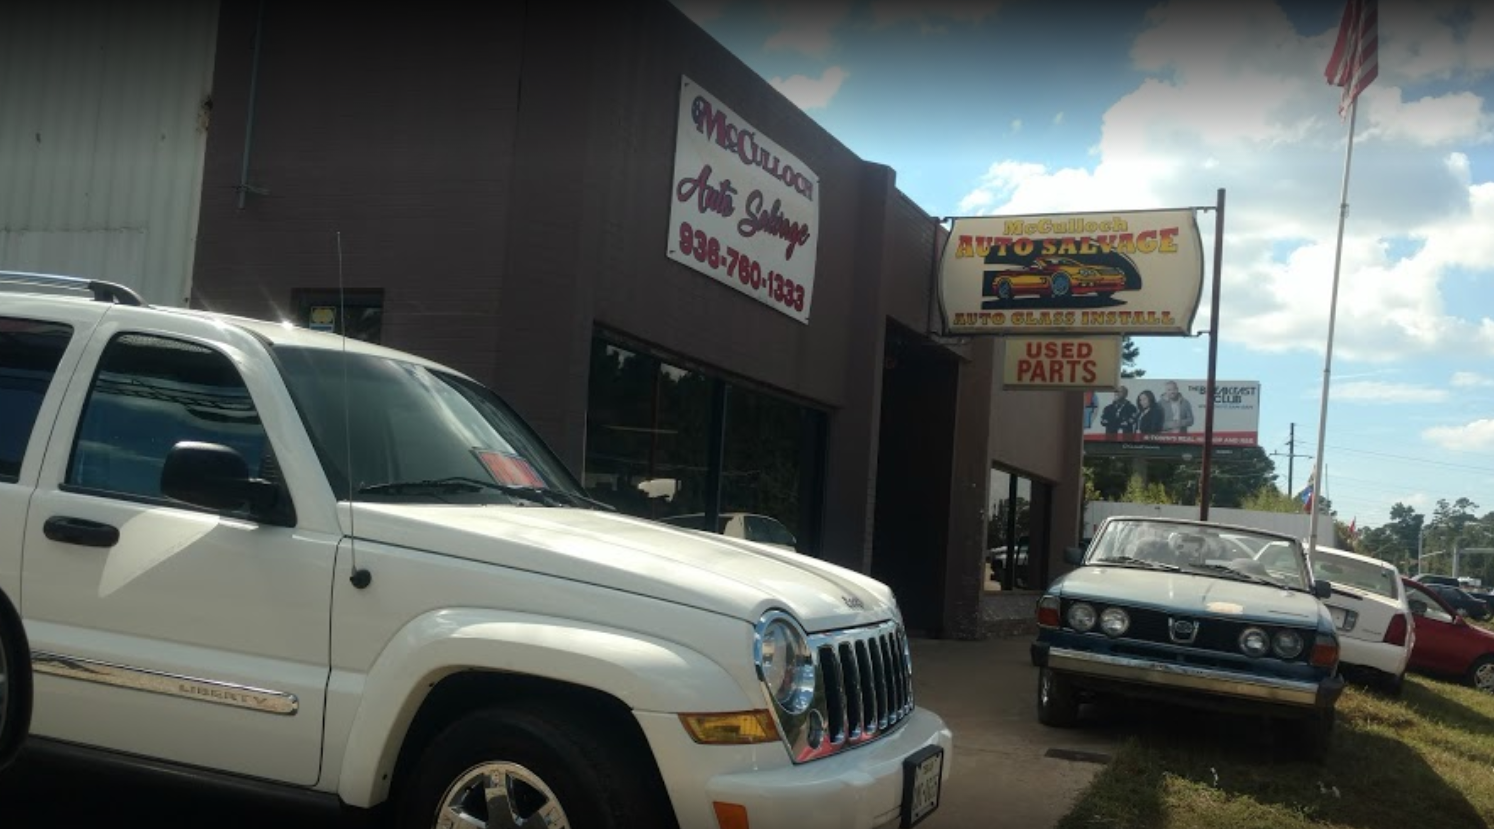 Used Auto Parts Mcculloch Salvage Car